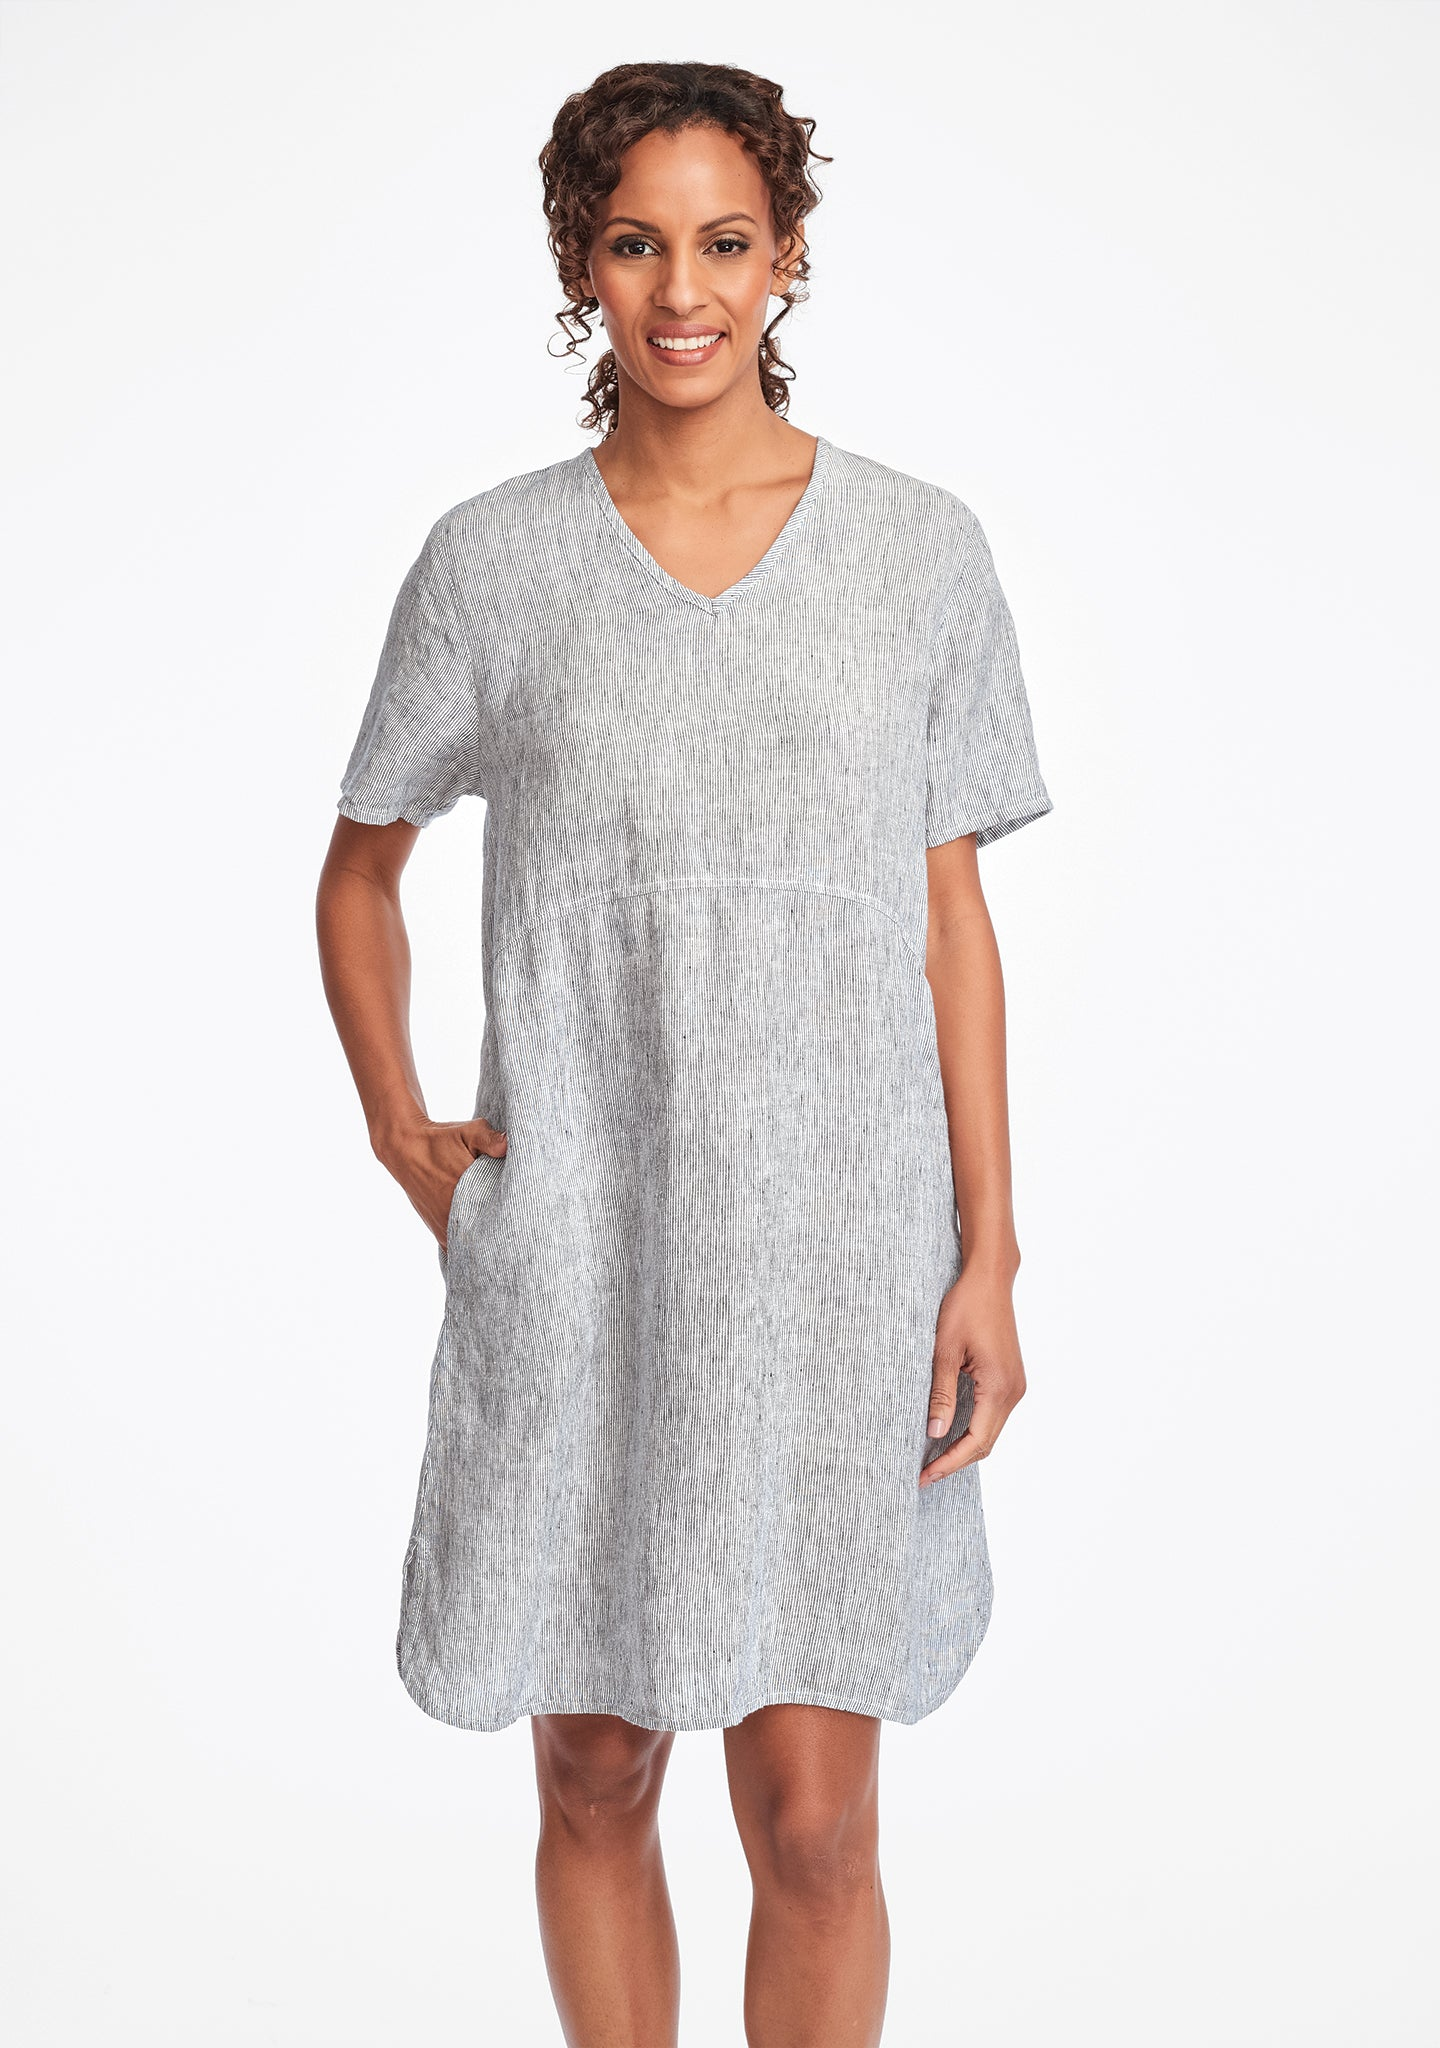 tee shirt dress linen summer dress blue